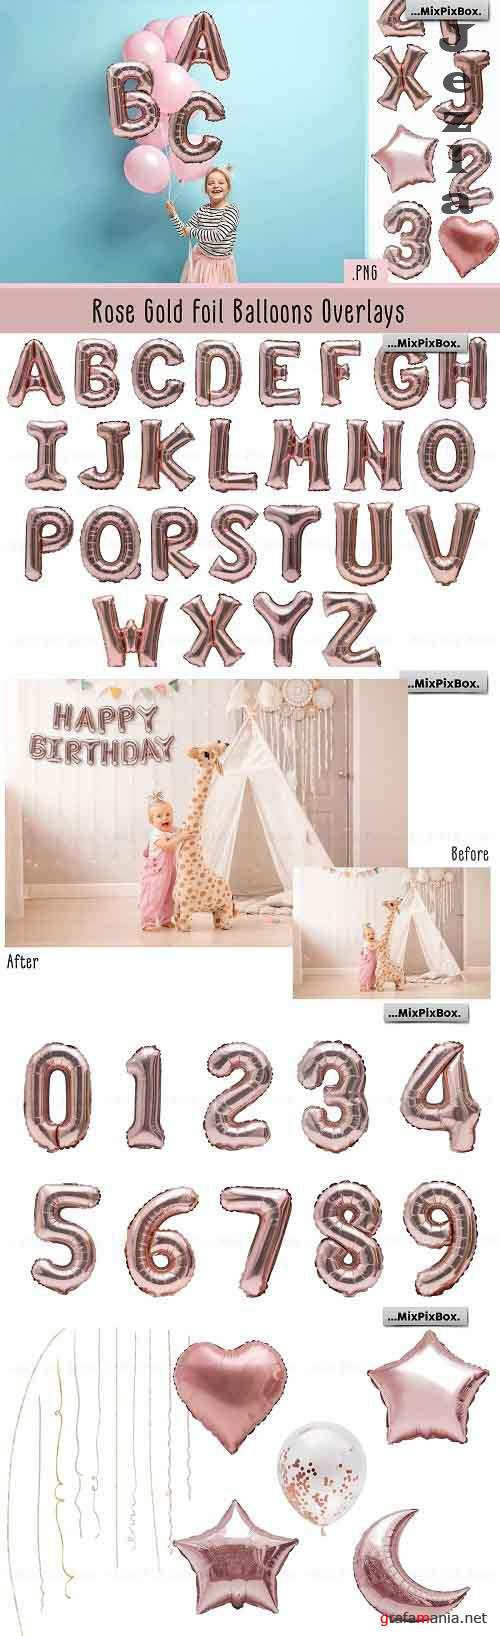 Rose Gold Foil Balloons Overlays - 4978844